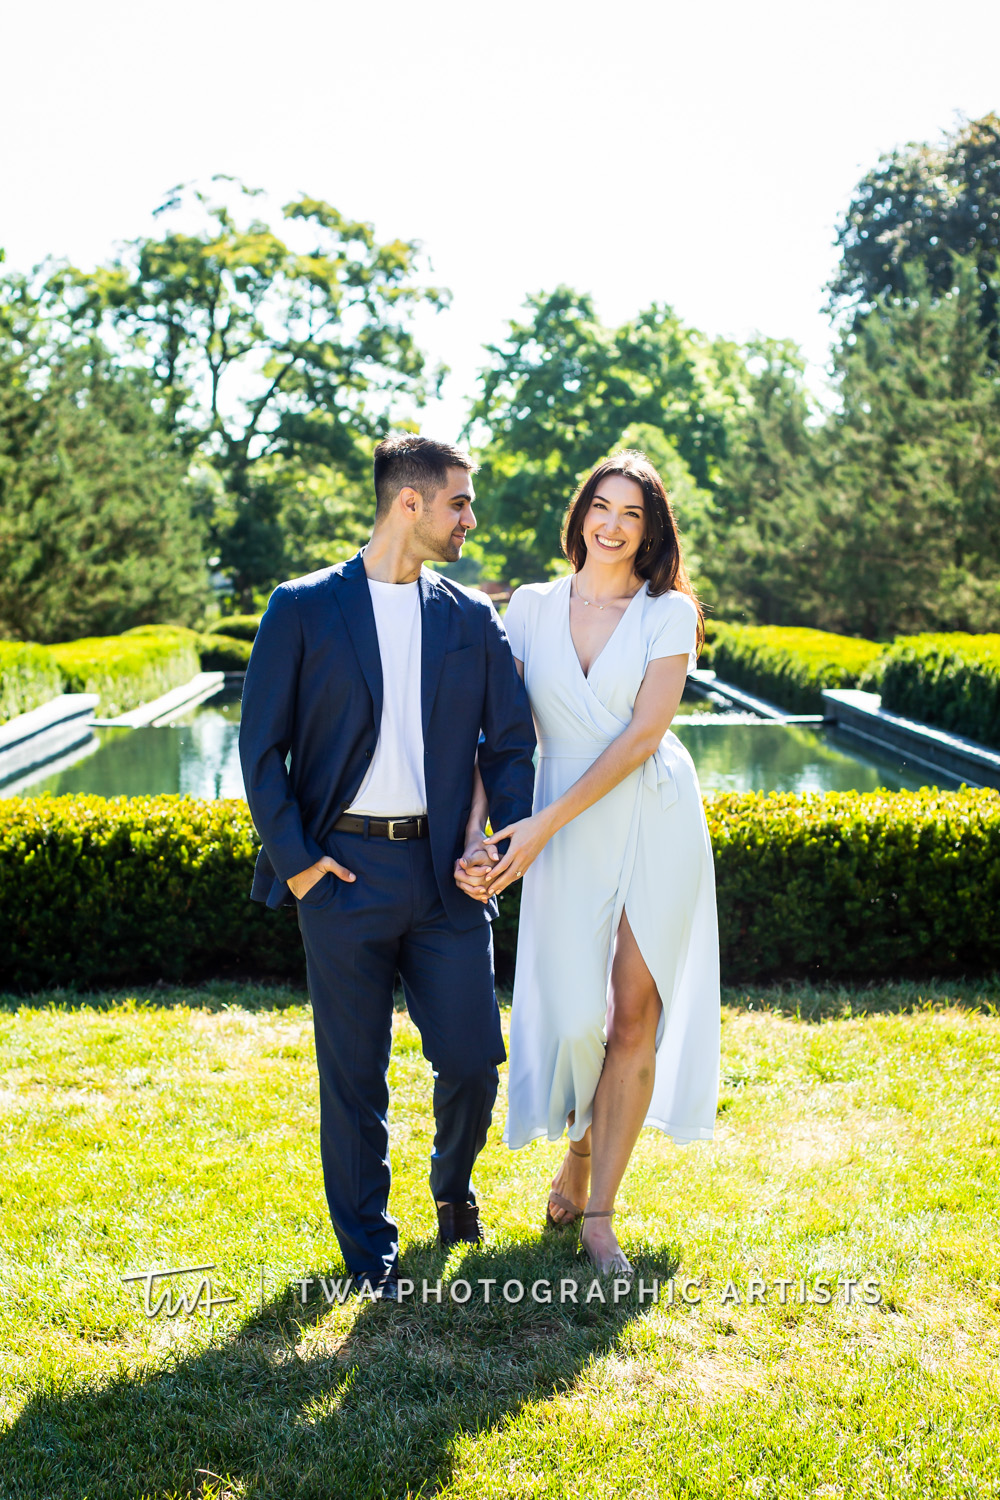 Chicago Wedding Photographers | Patrice & Ted's Cantigny Park Engagement Session | TWA Photographic Artists